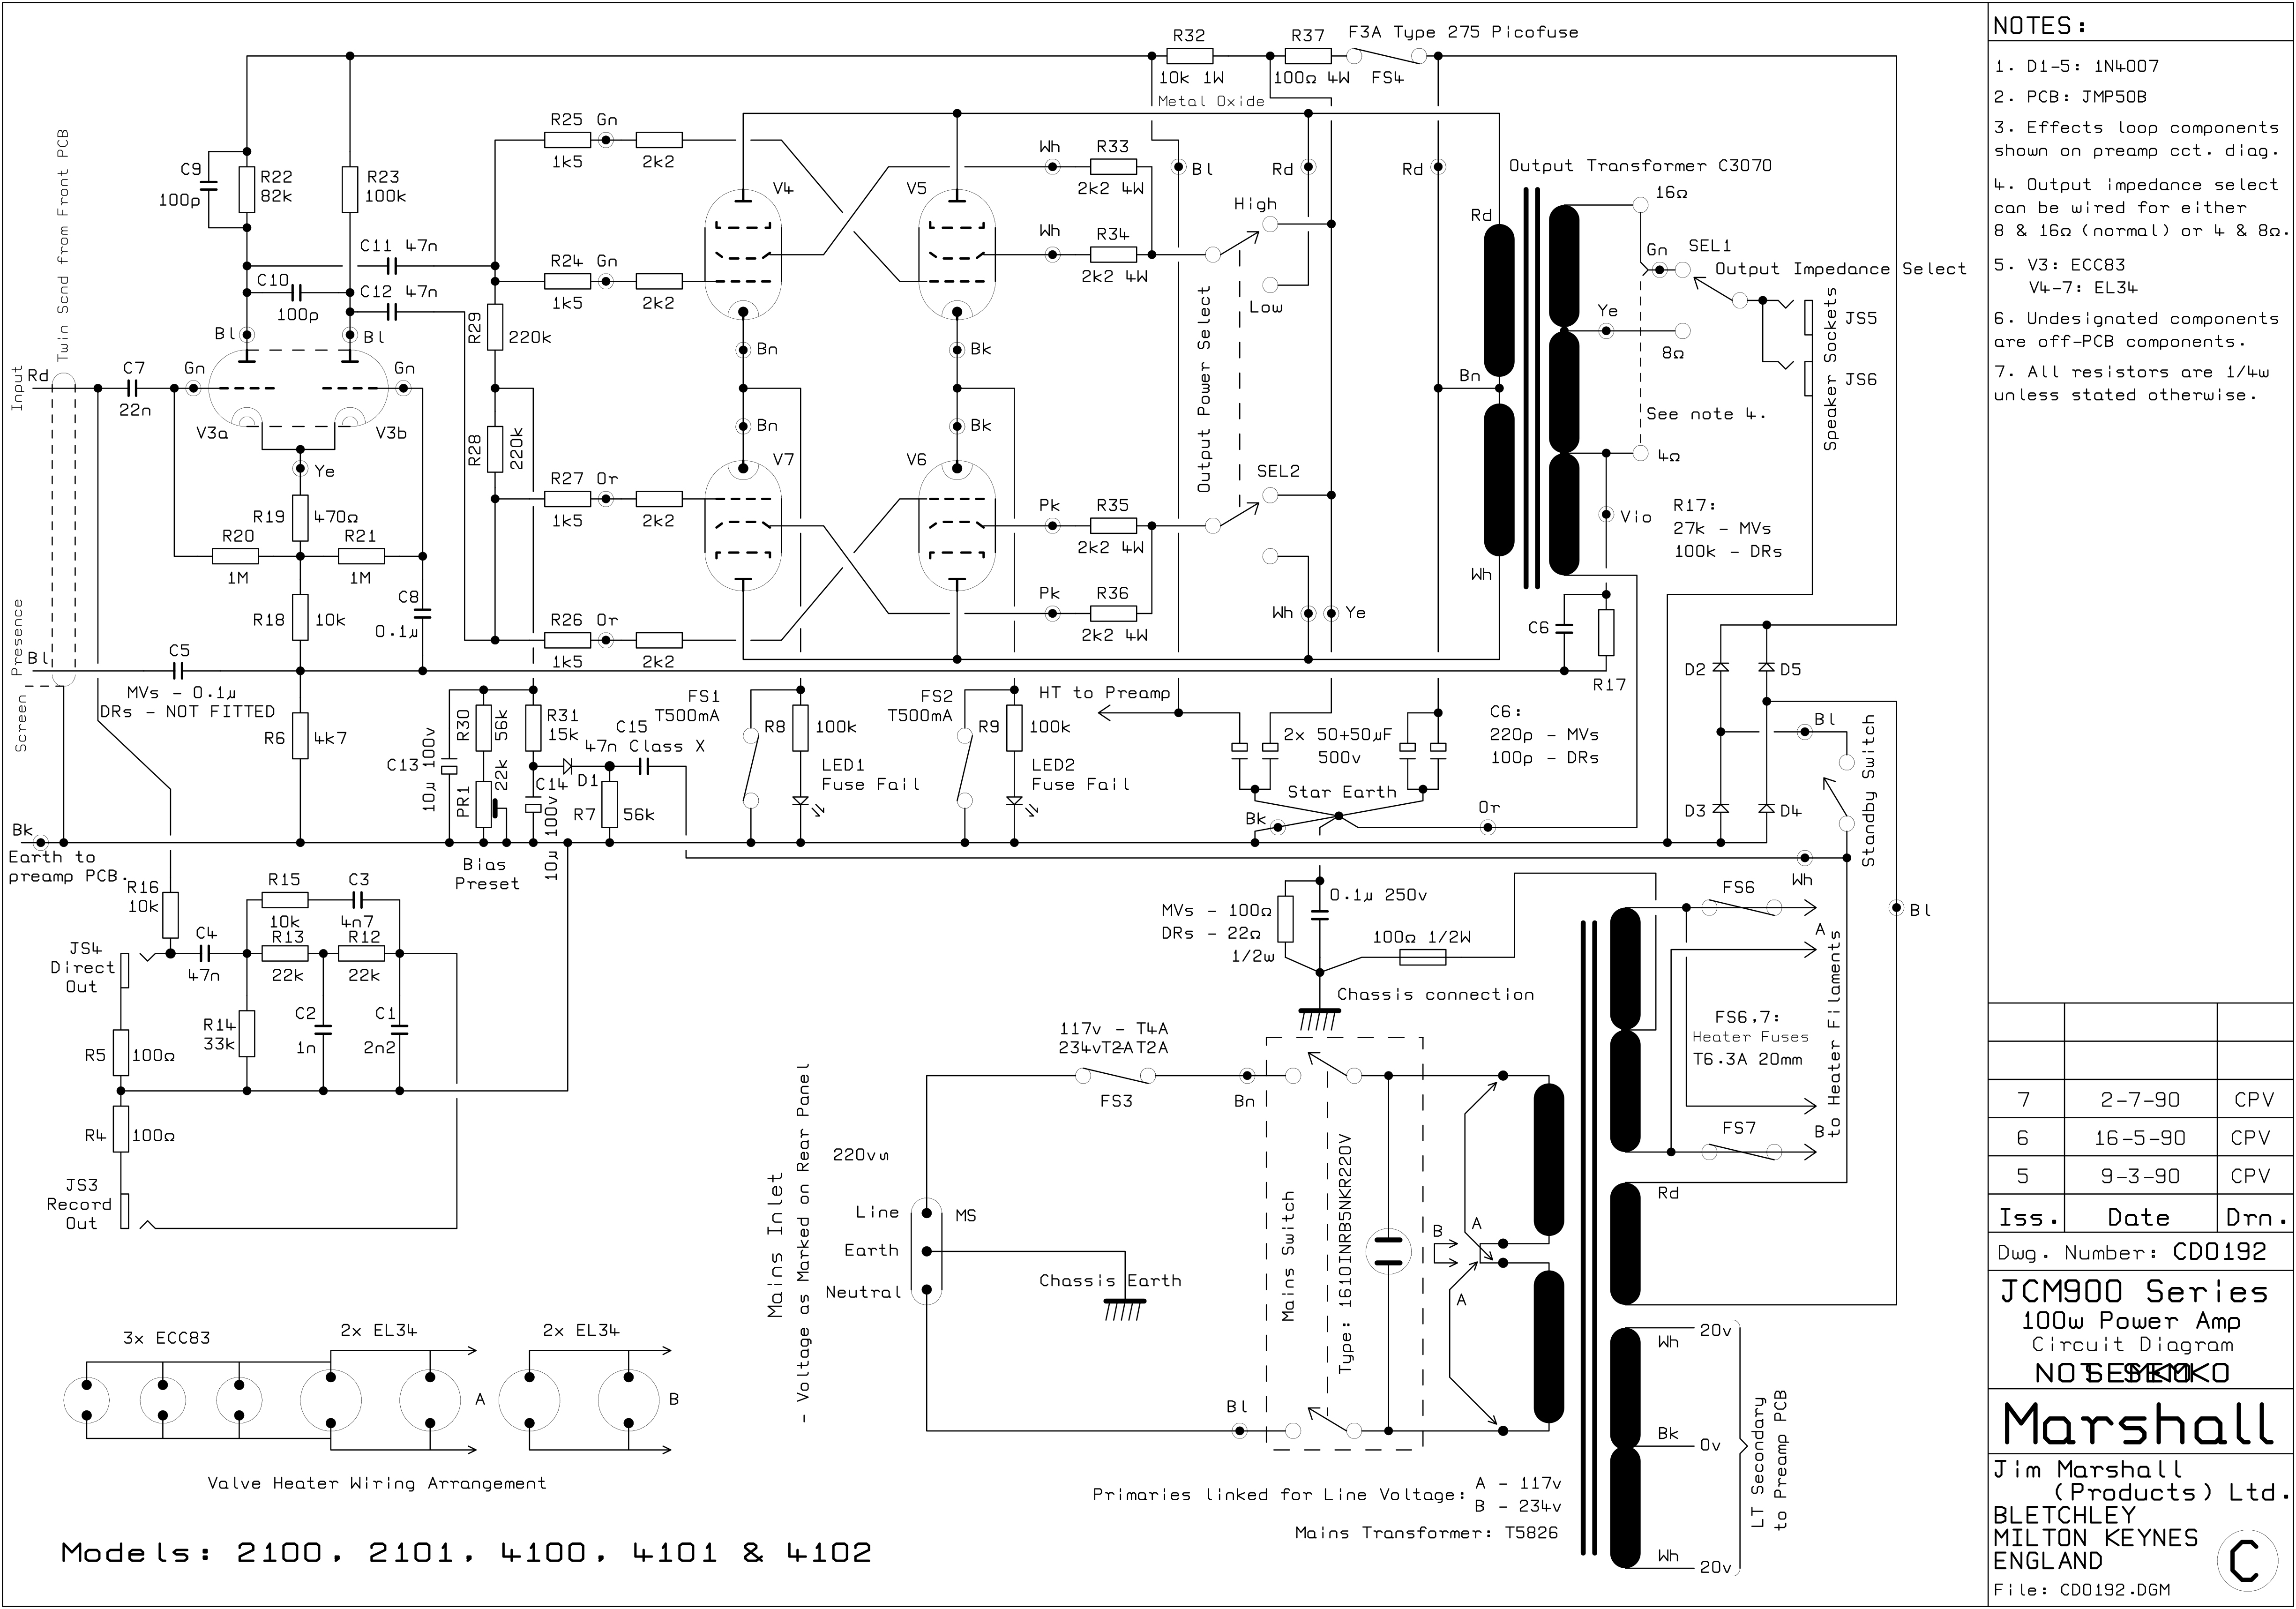 Marshall JCM900 4100 | IRATION AUDIO on marshall amp schematic, marshall jtm45 schematic, marshall jtm50 schematic, marshall 1959 schematic, marshall jcm800 schematic, marshall class 5 schematic, marshall dsl schematic, marshall plexi schematic,